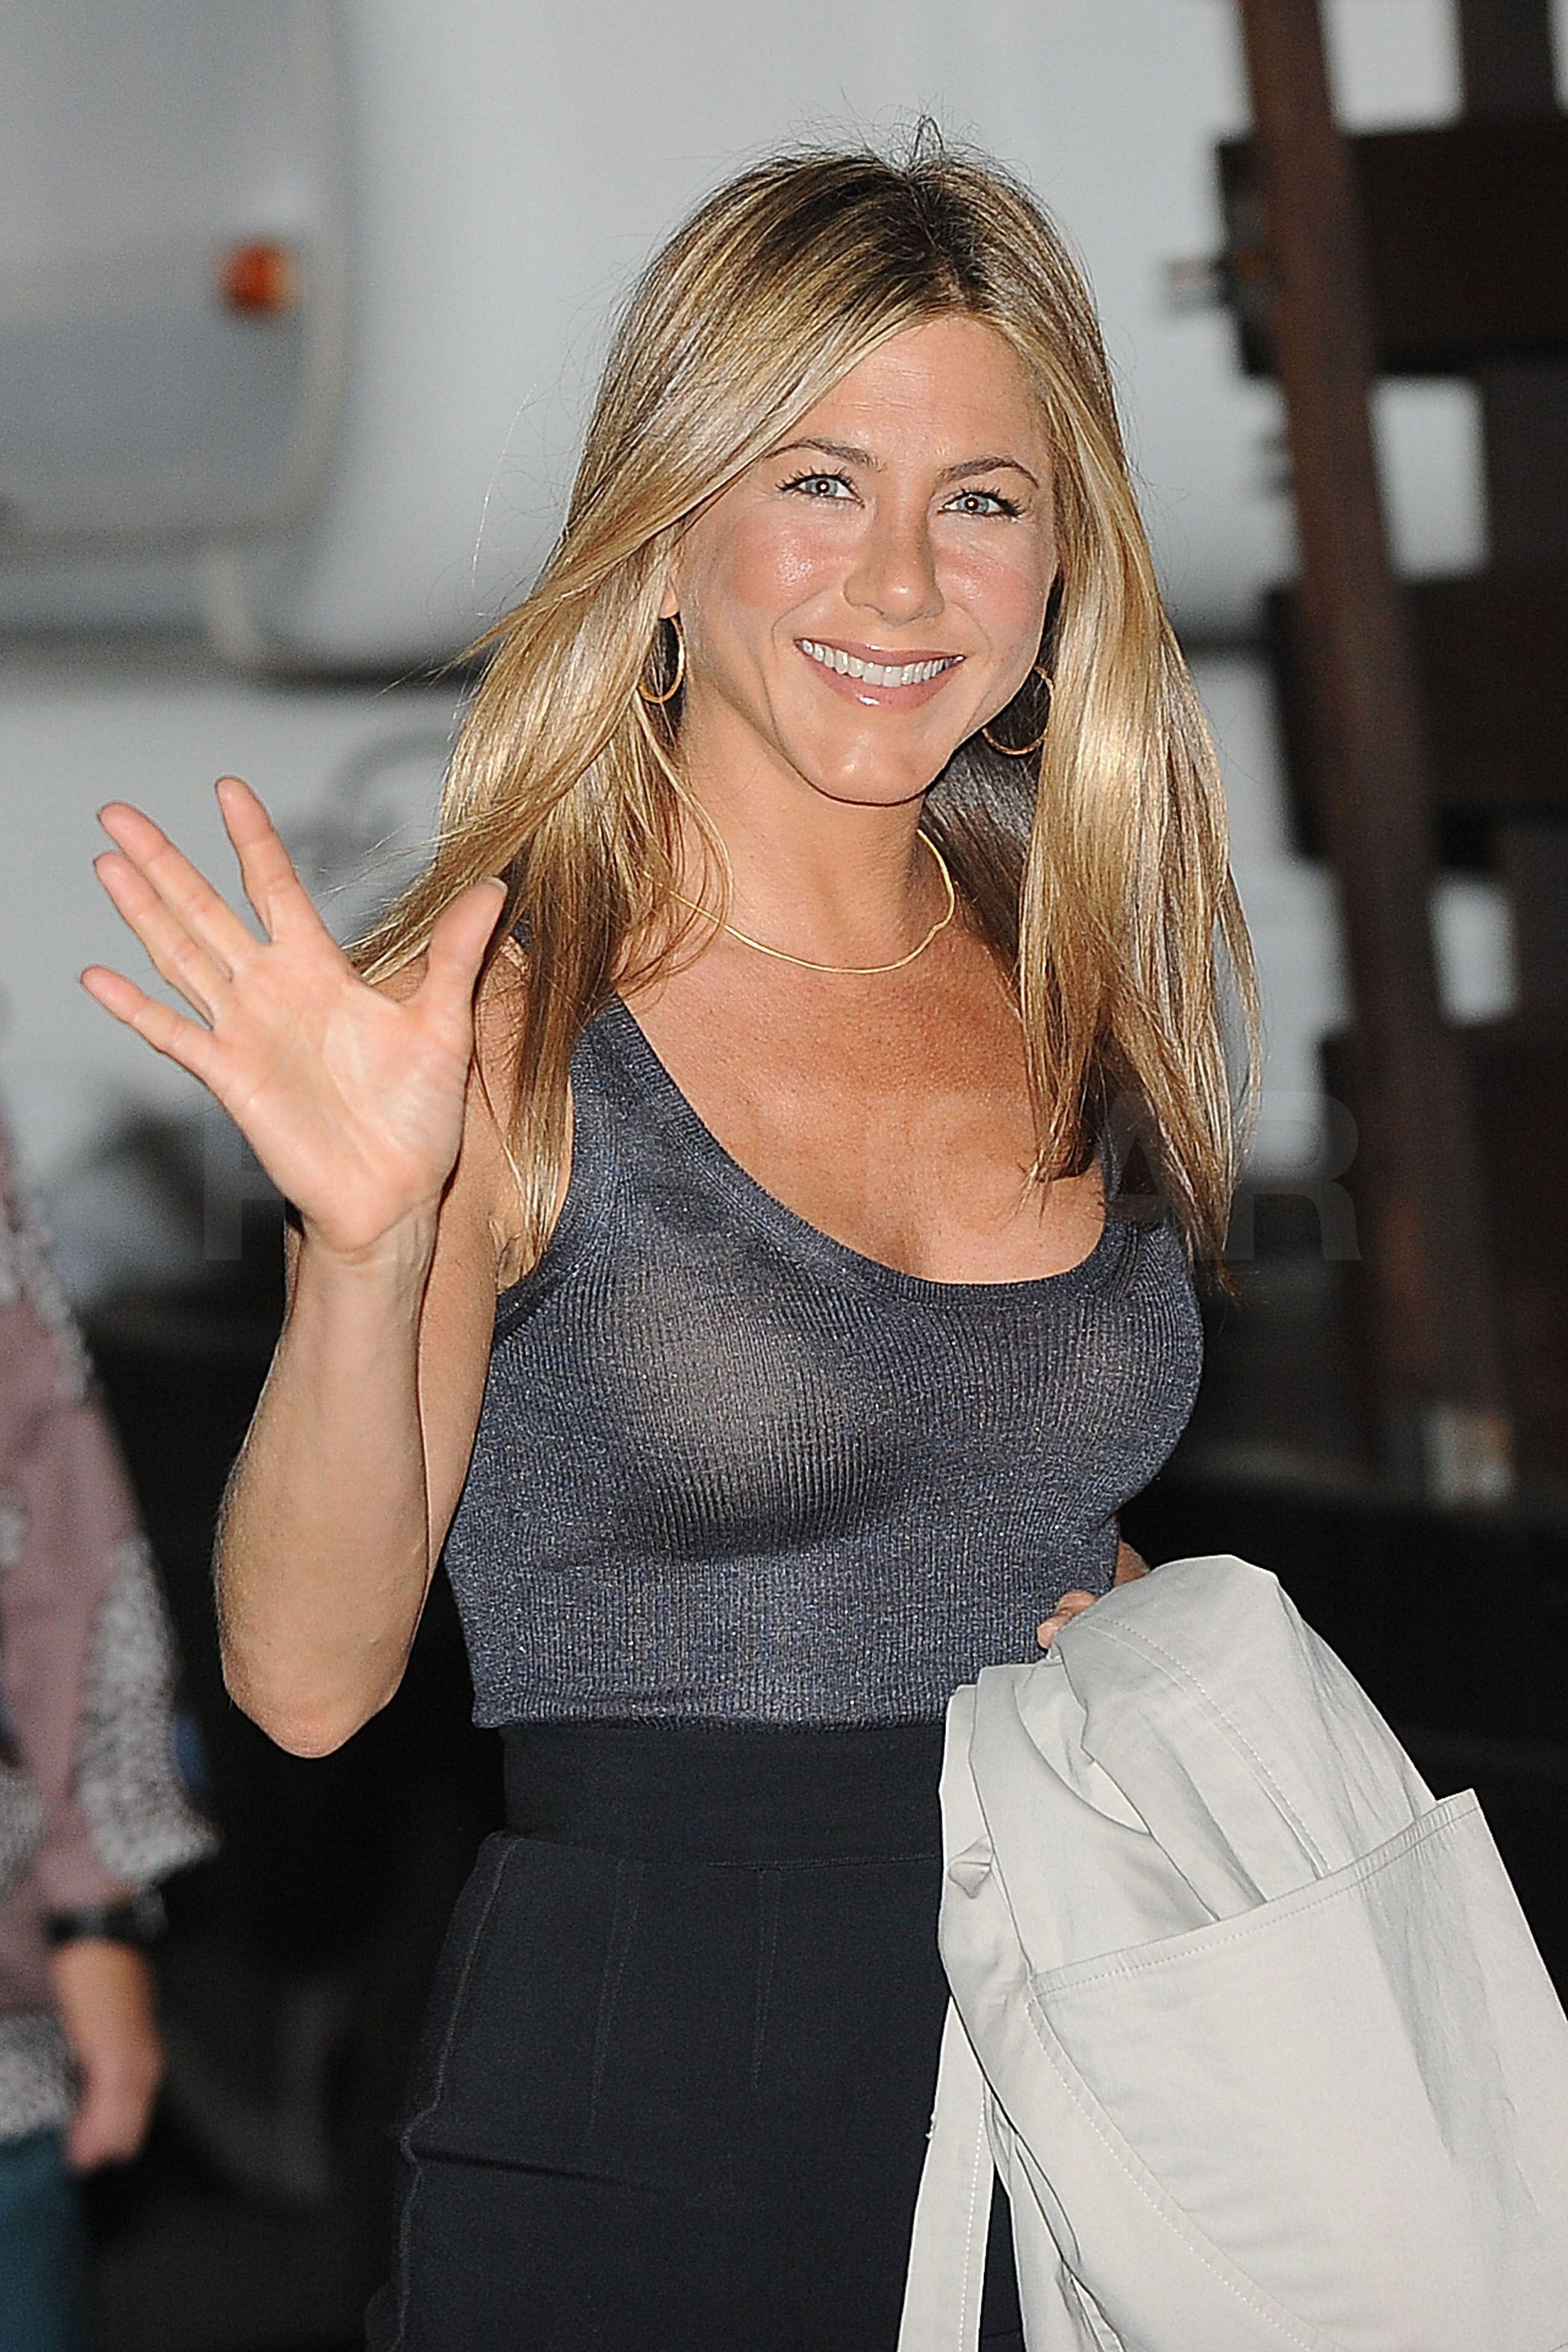 Jennifer Aniston Archives - TOTPI